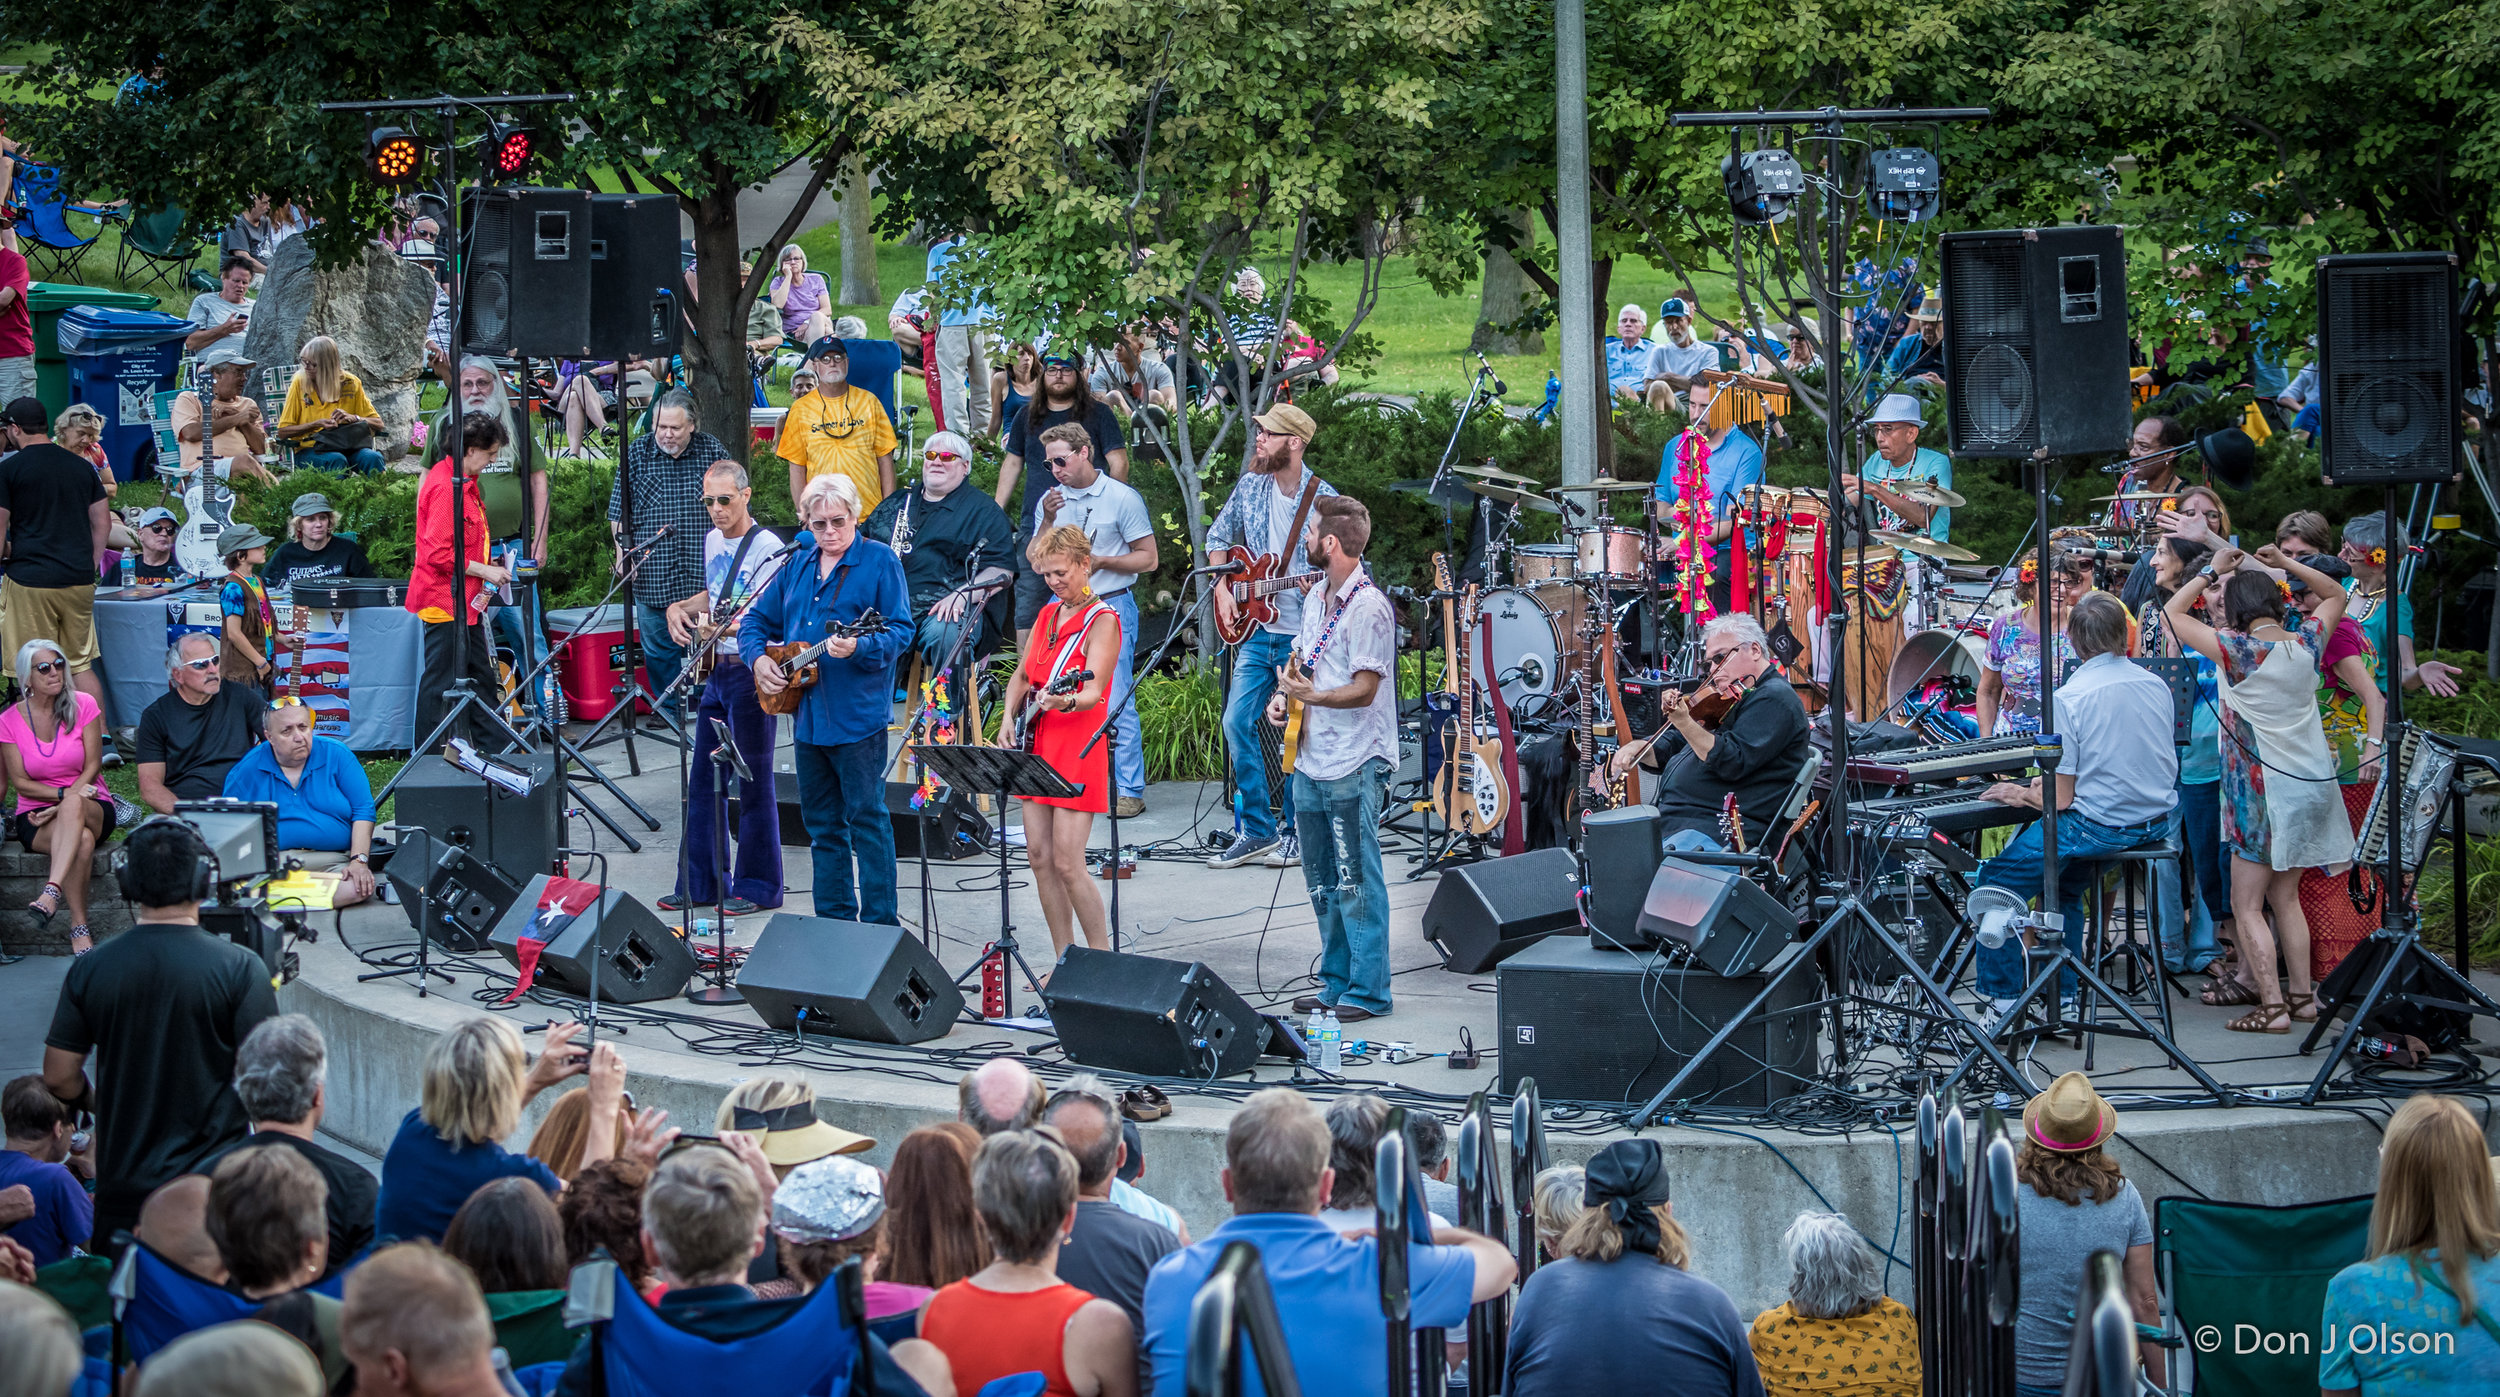 Summer Of Love Band / The Veterans' Memorial Wolfe Park Amphitheater / St. Louis Park, Minnesota / July 29th, 2017